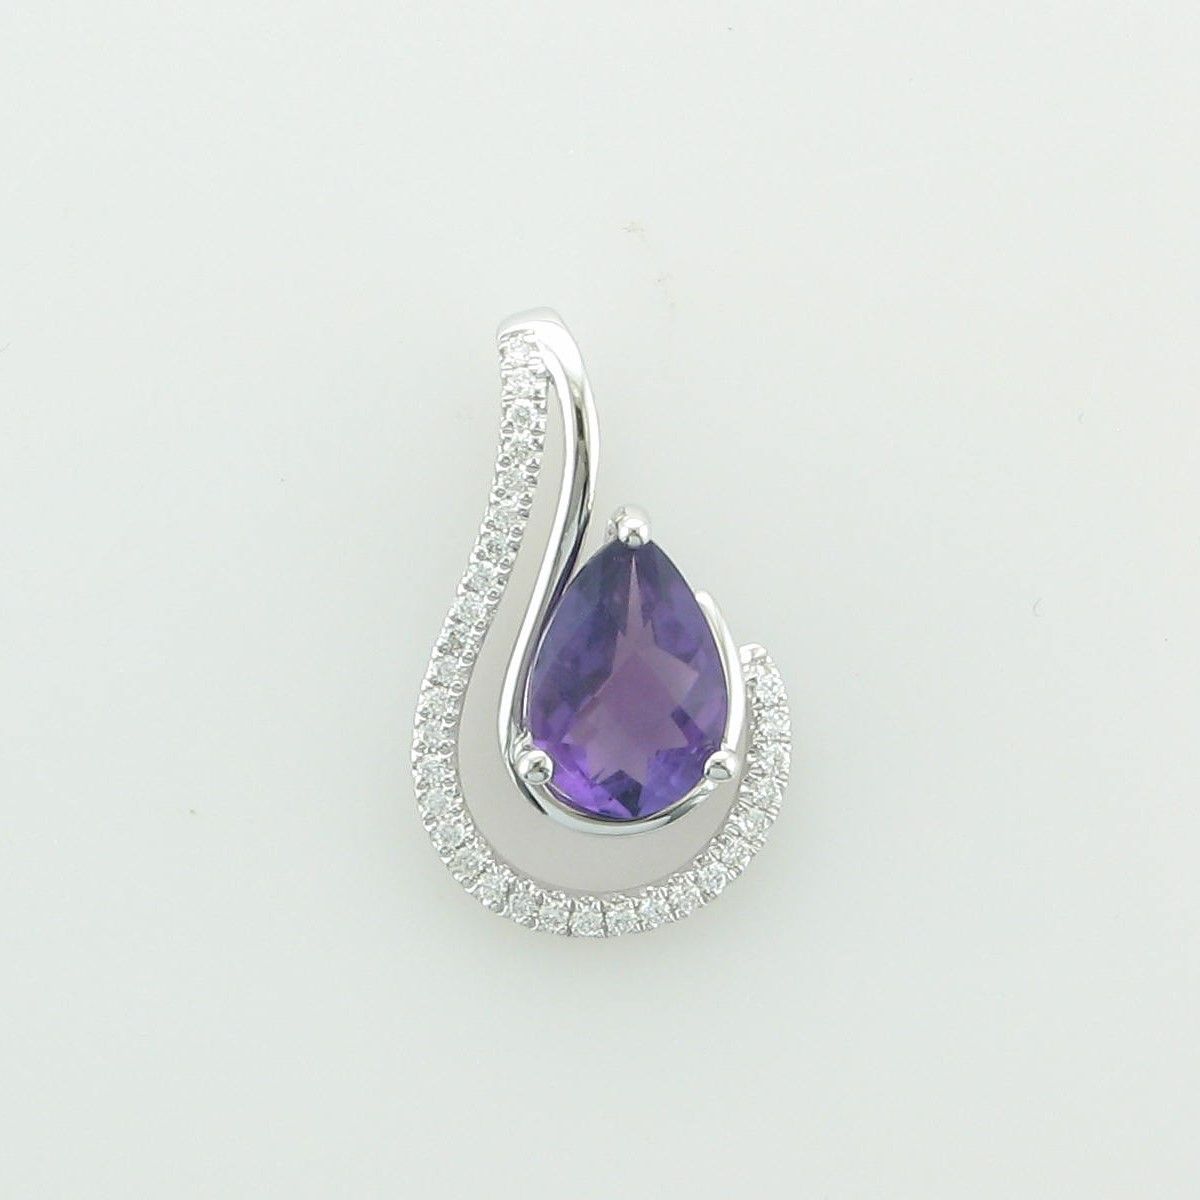 1.12ct Amethyst and Diamond Pendant set in 14k White Gold